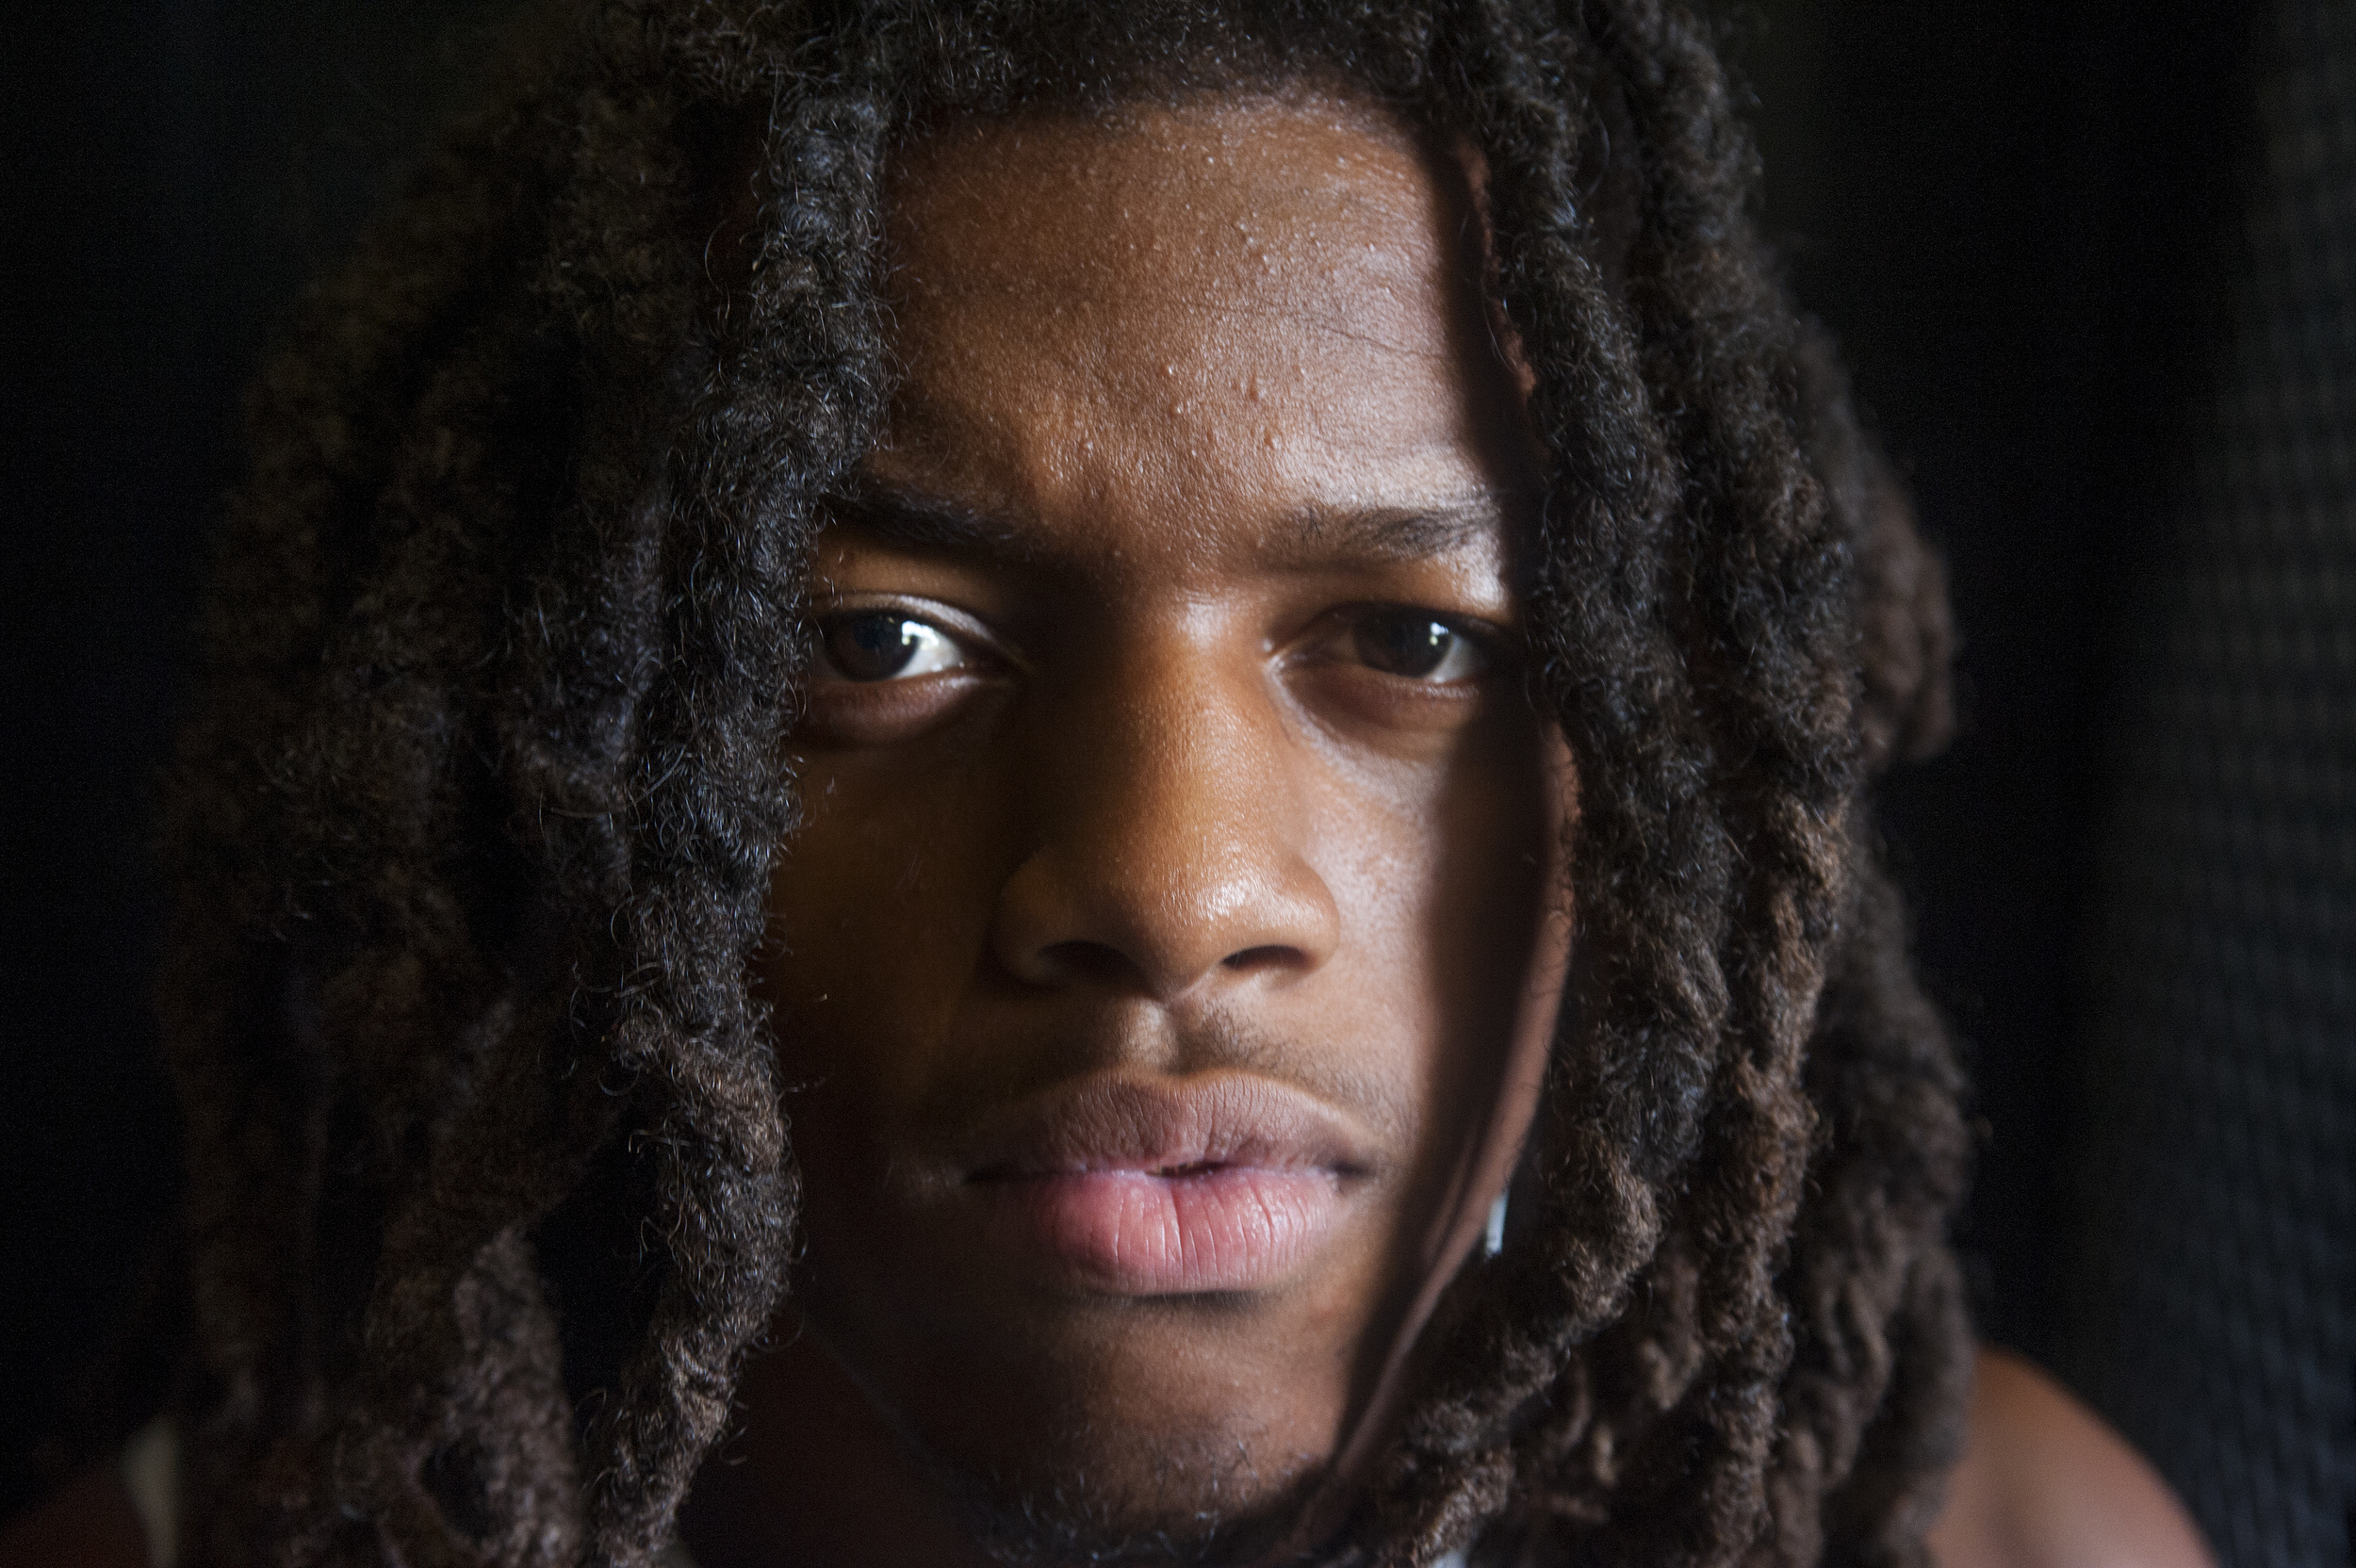 Flanagan high school senior wide receiver Caleb Thomas poses for a portrait while getting dressed for the first practice of the high school football season at Flanagan High School on Monday, Aug. 1, 2016. The reigning state champions look to repeat again despite the loss of key players from last year.